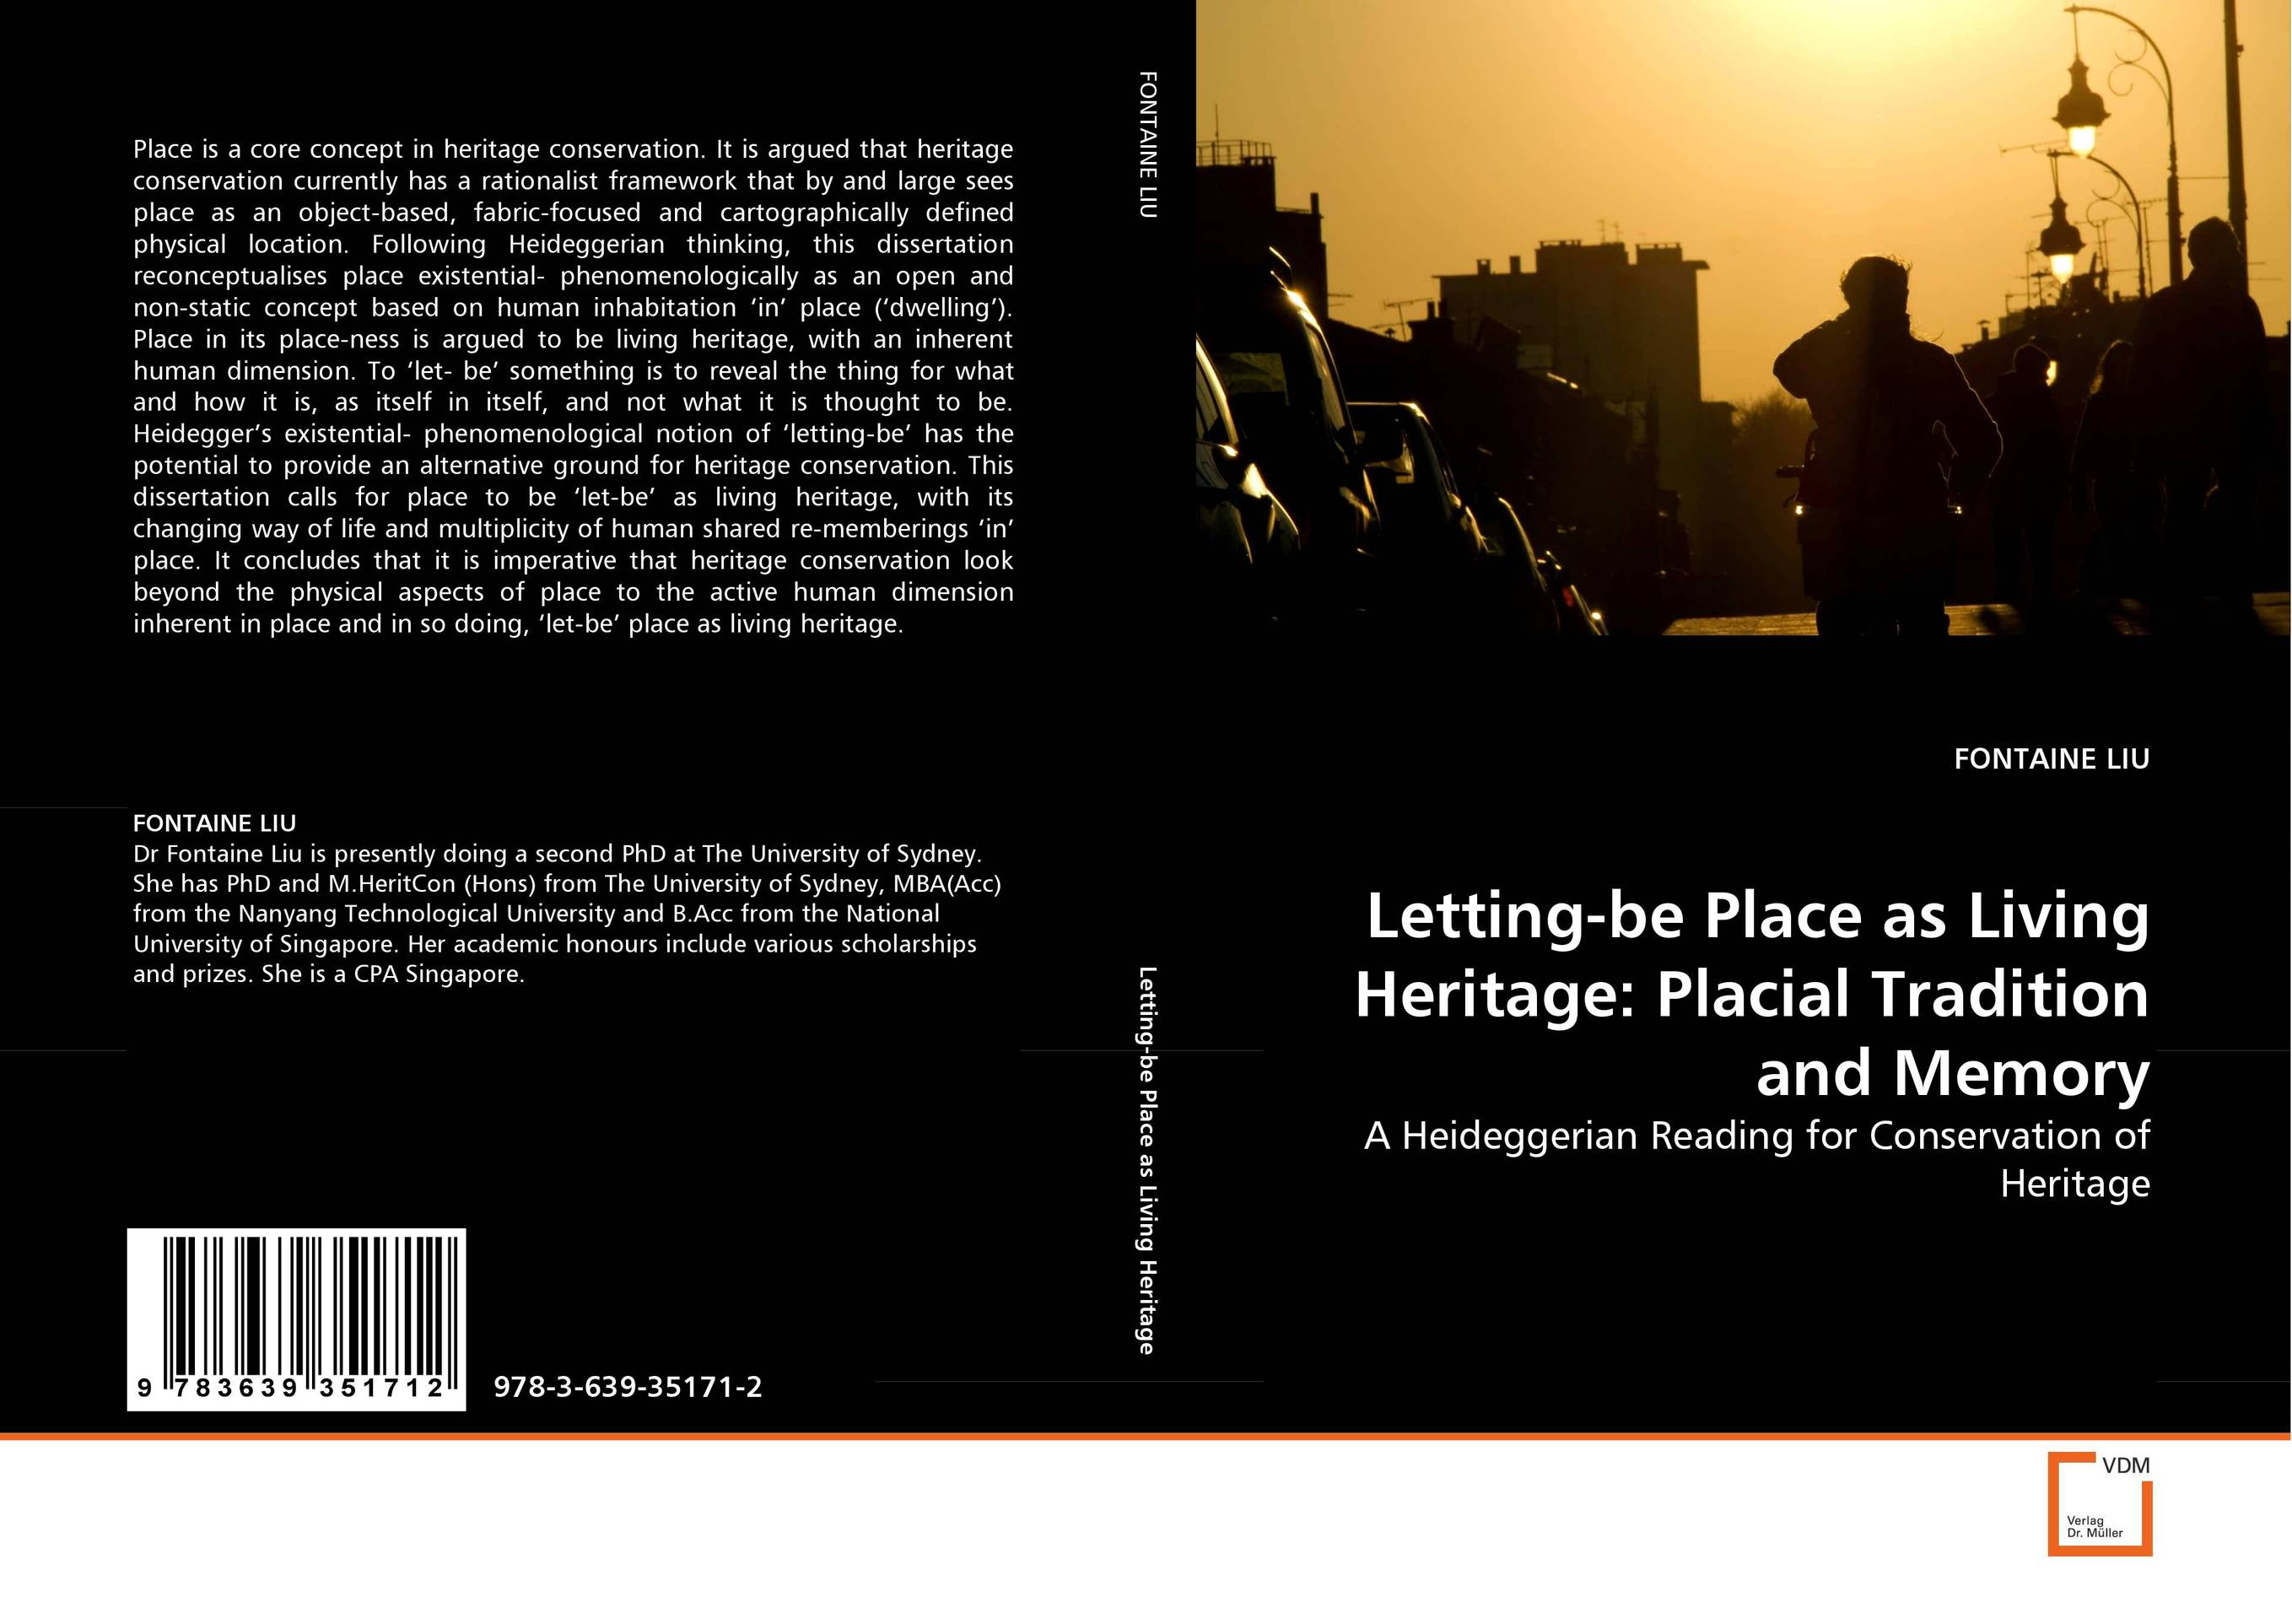 Letting-be Place as Living Heritage: Placial Tradition and Memory living it